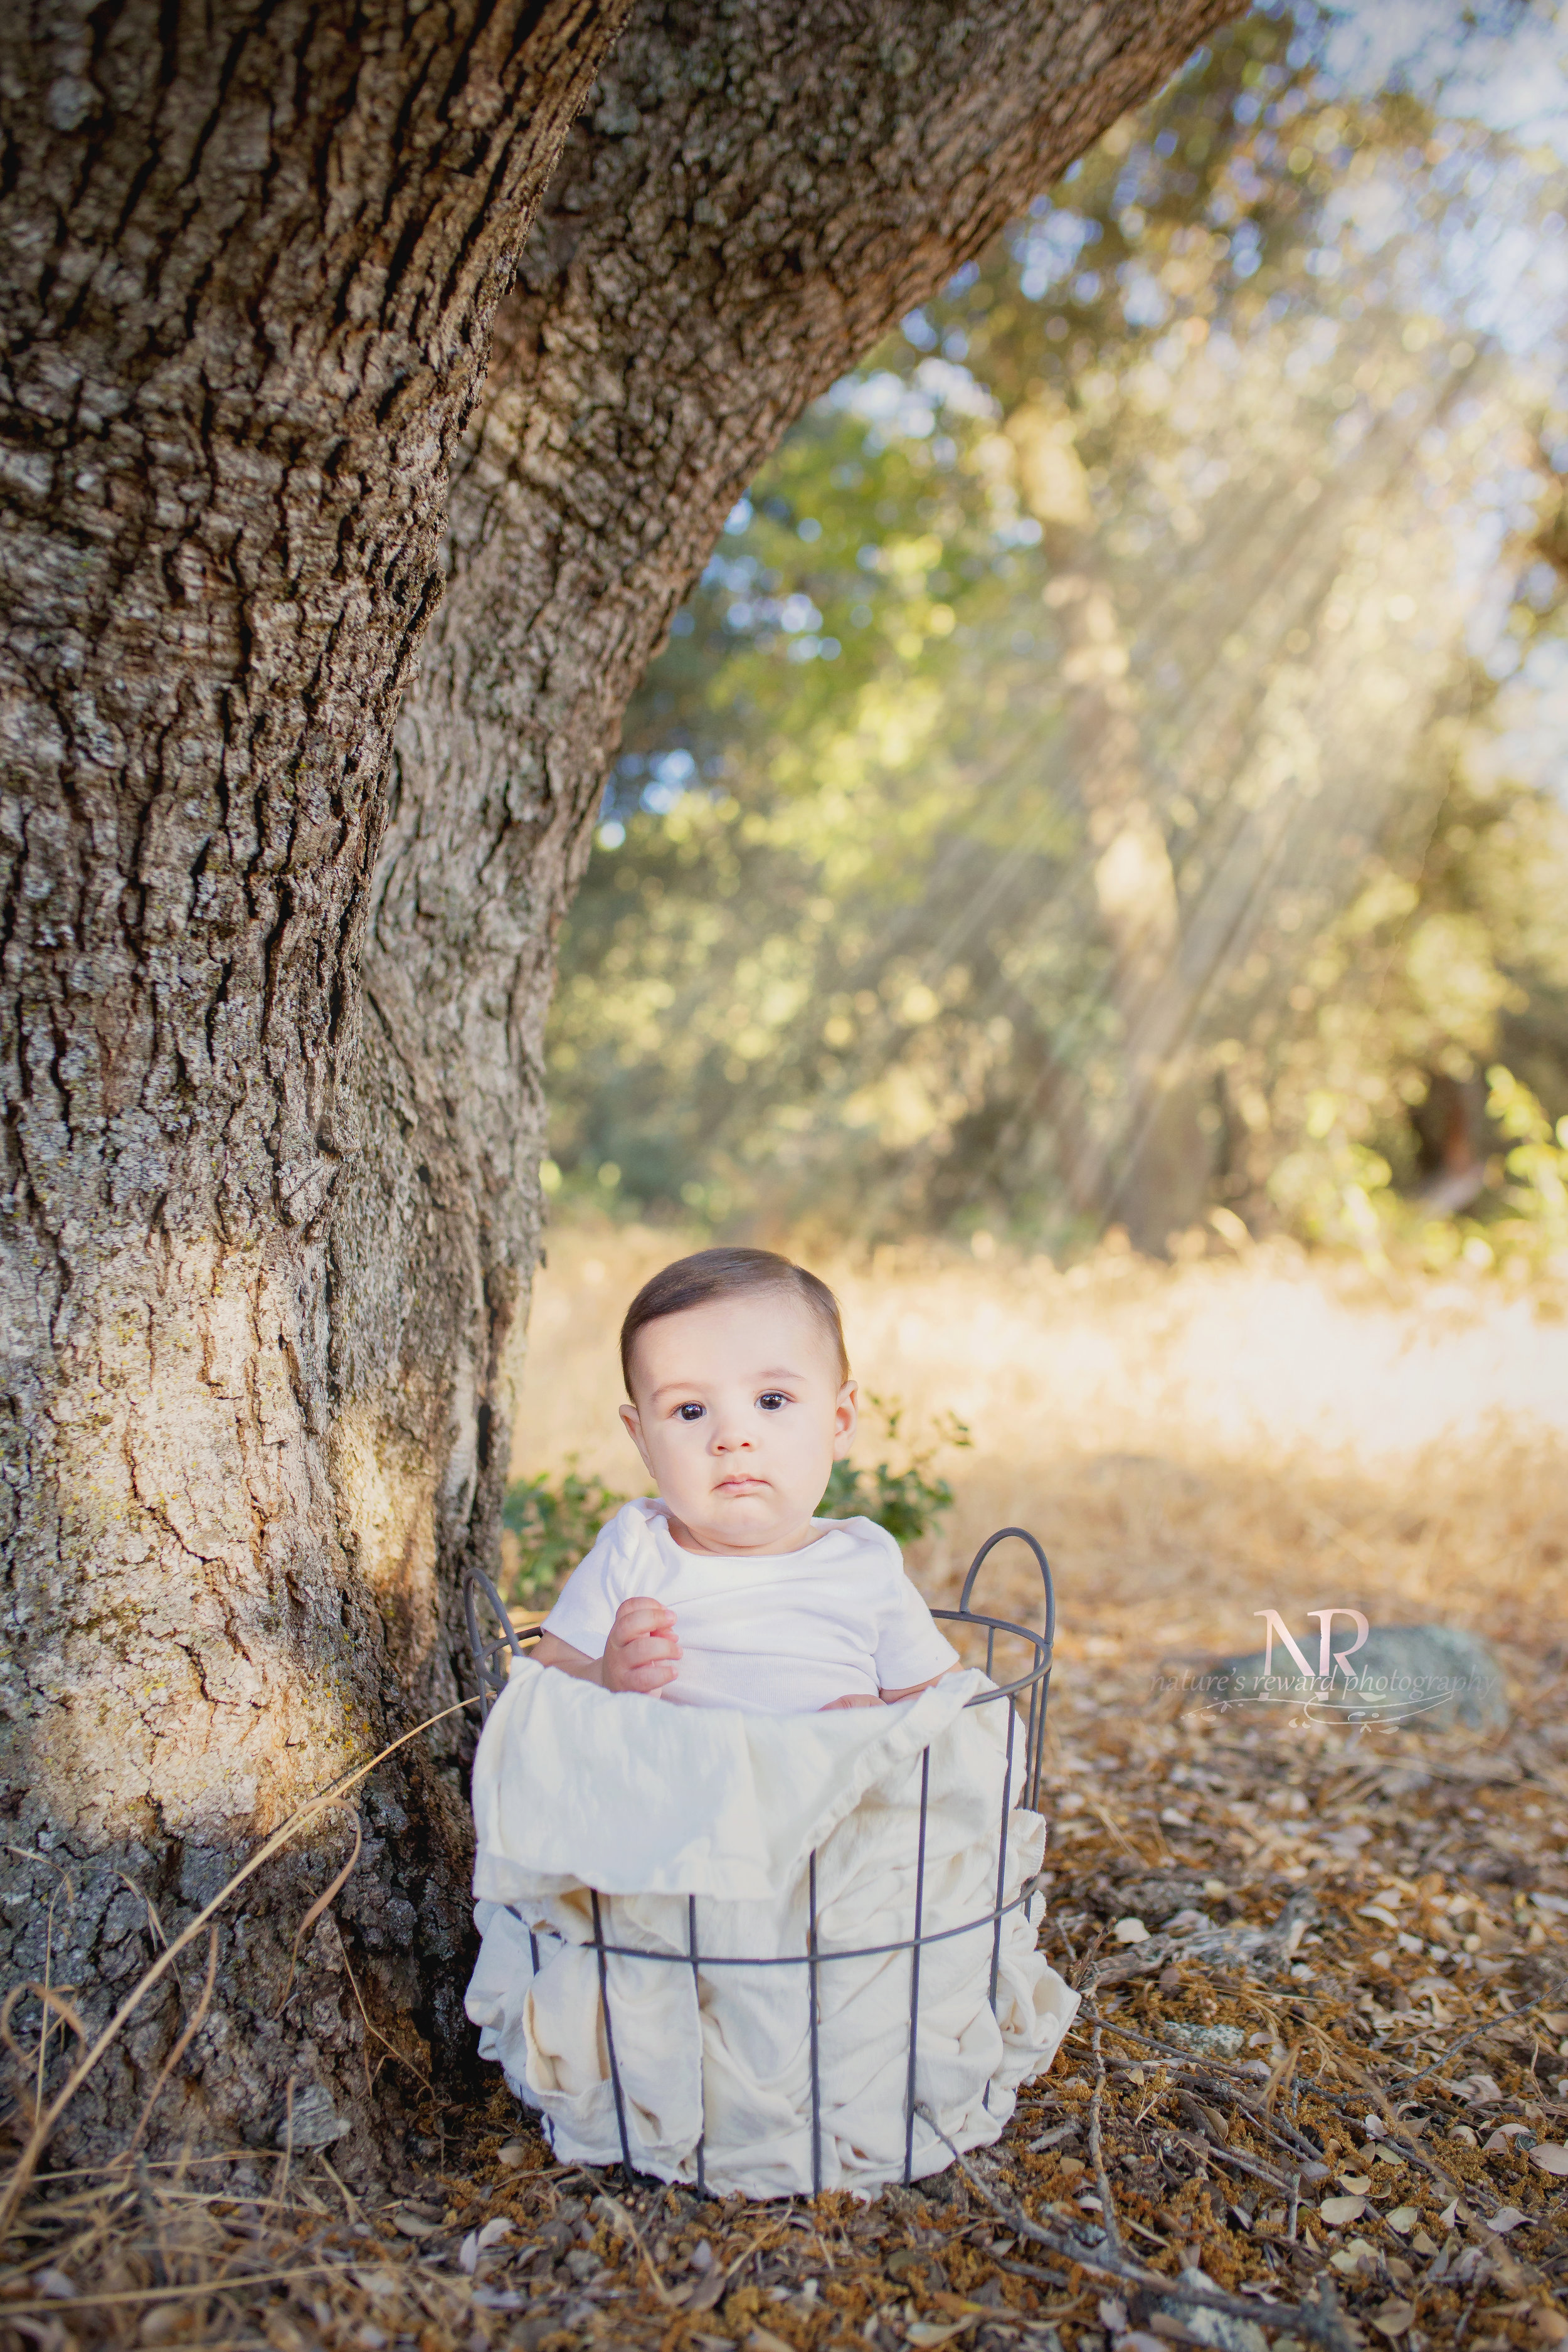 Dreaming under a tree- sweet baby boy in a basket